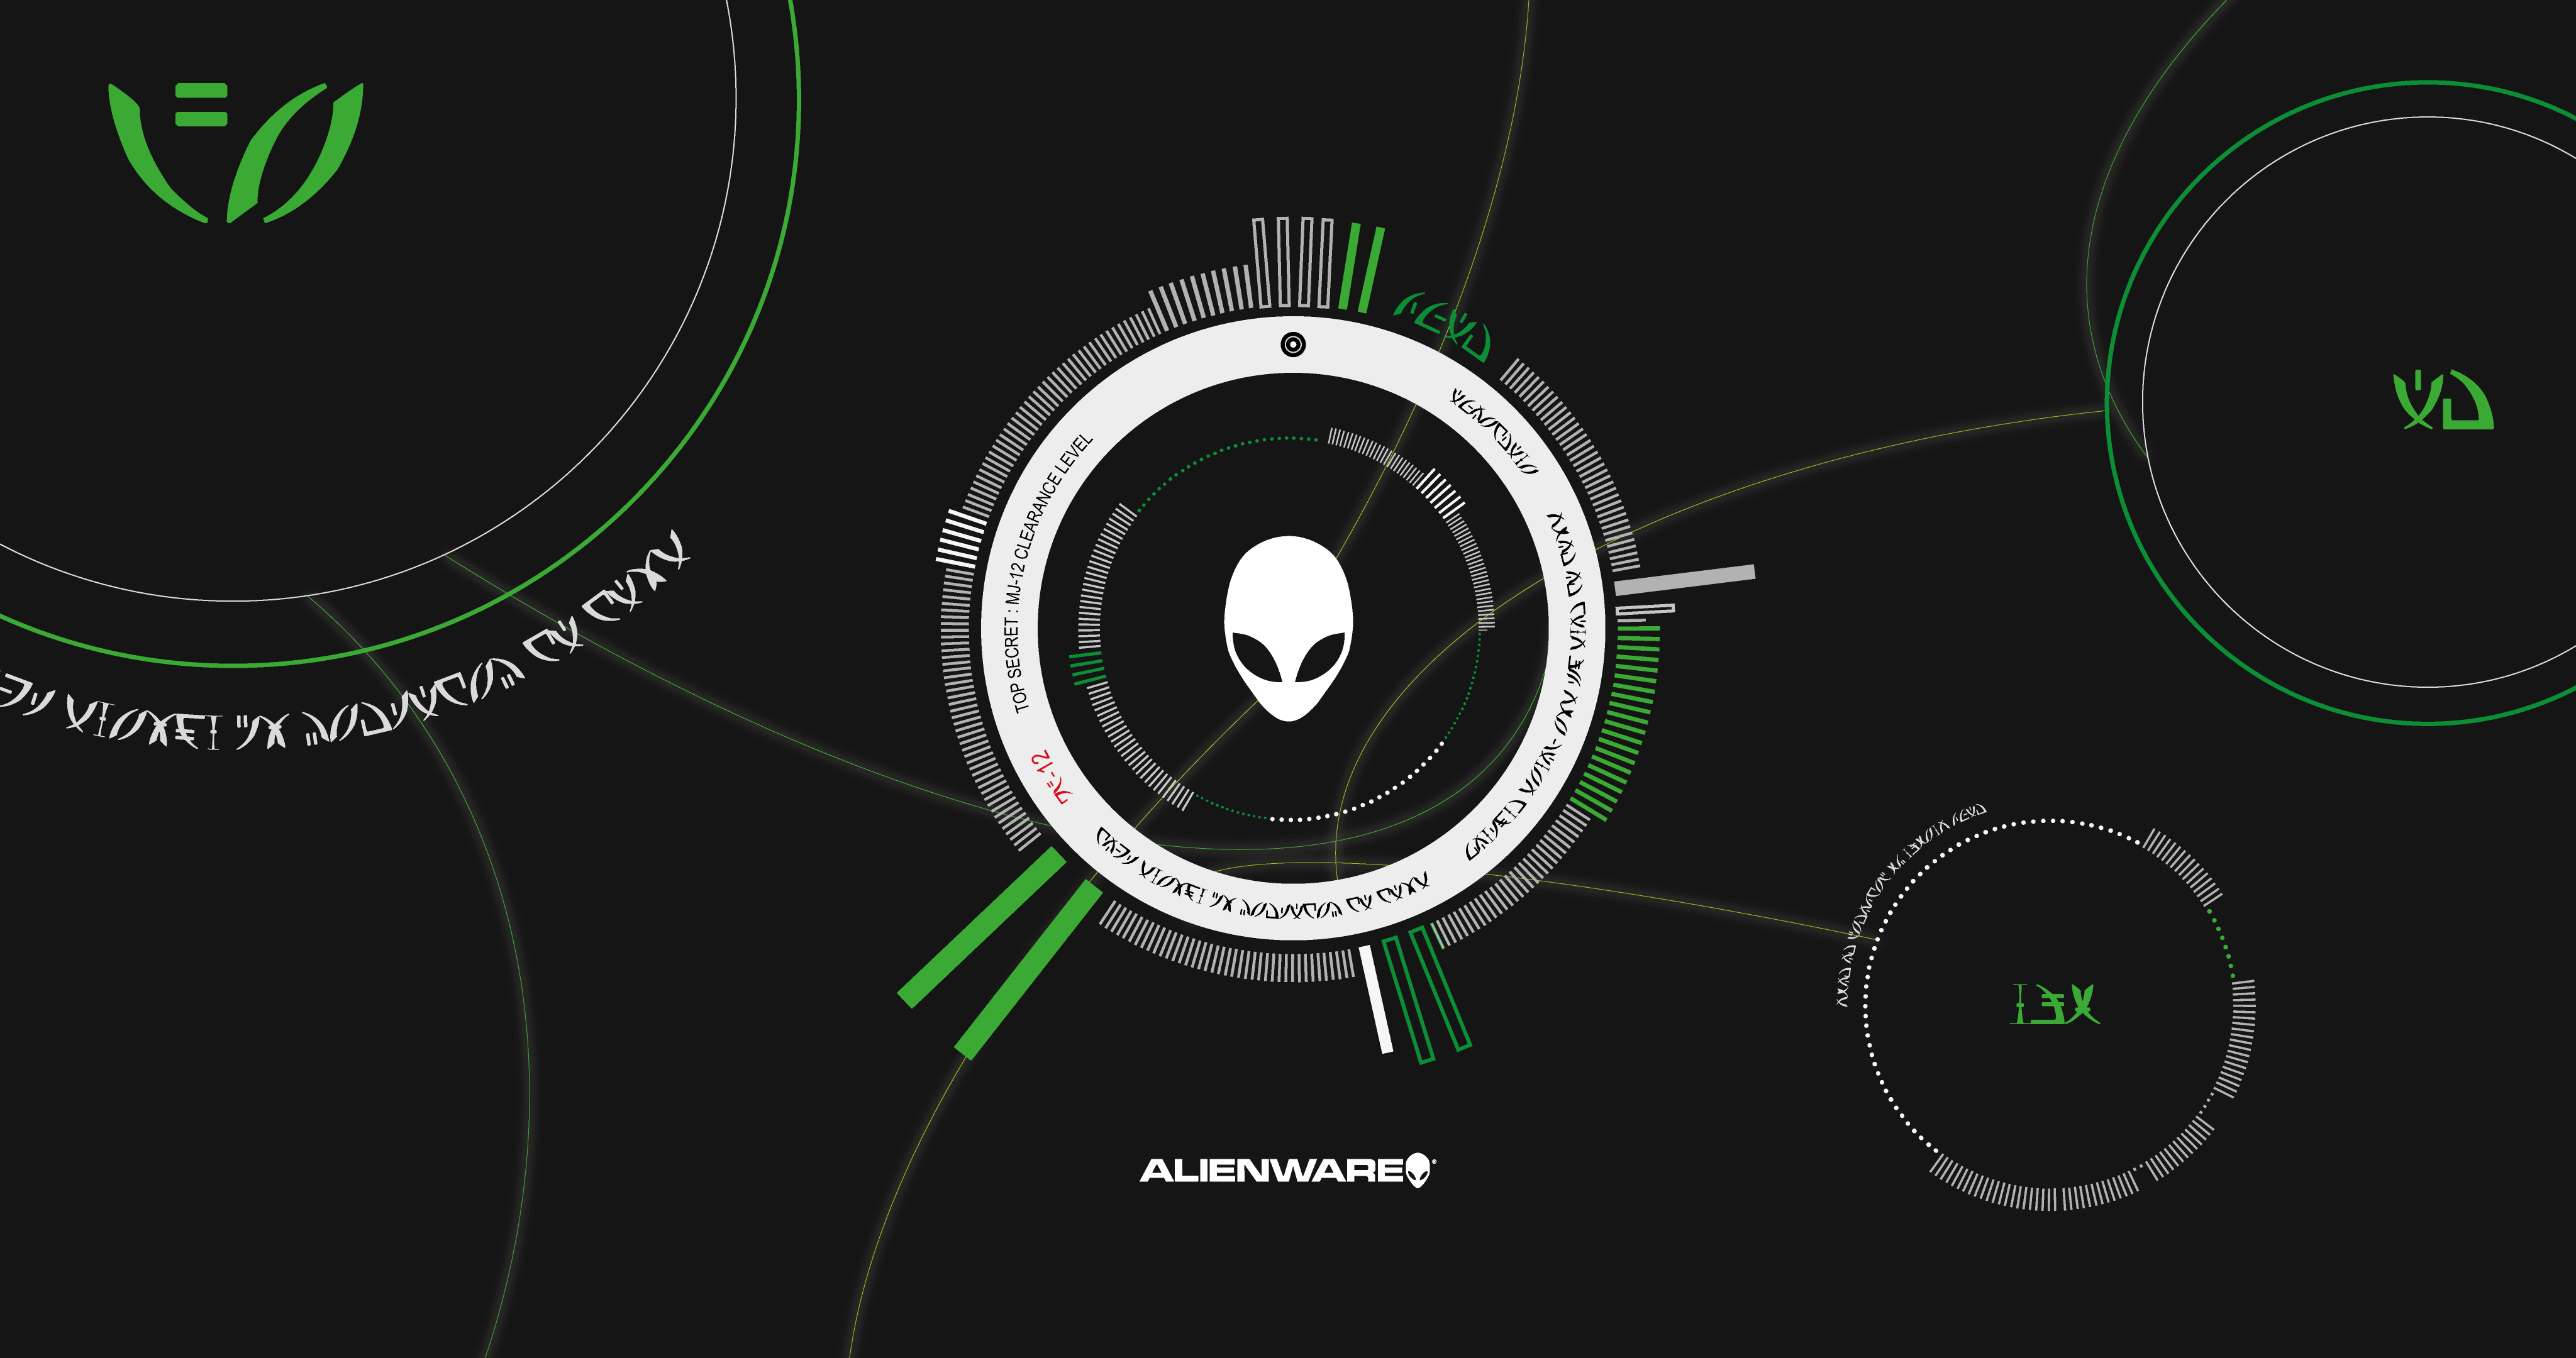 Alienware Official Wallpapers - Top Free Alienware Official